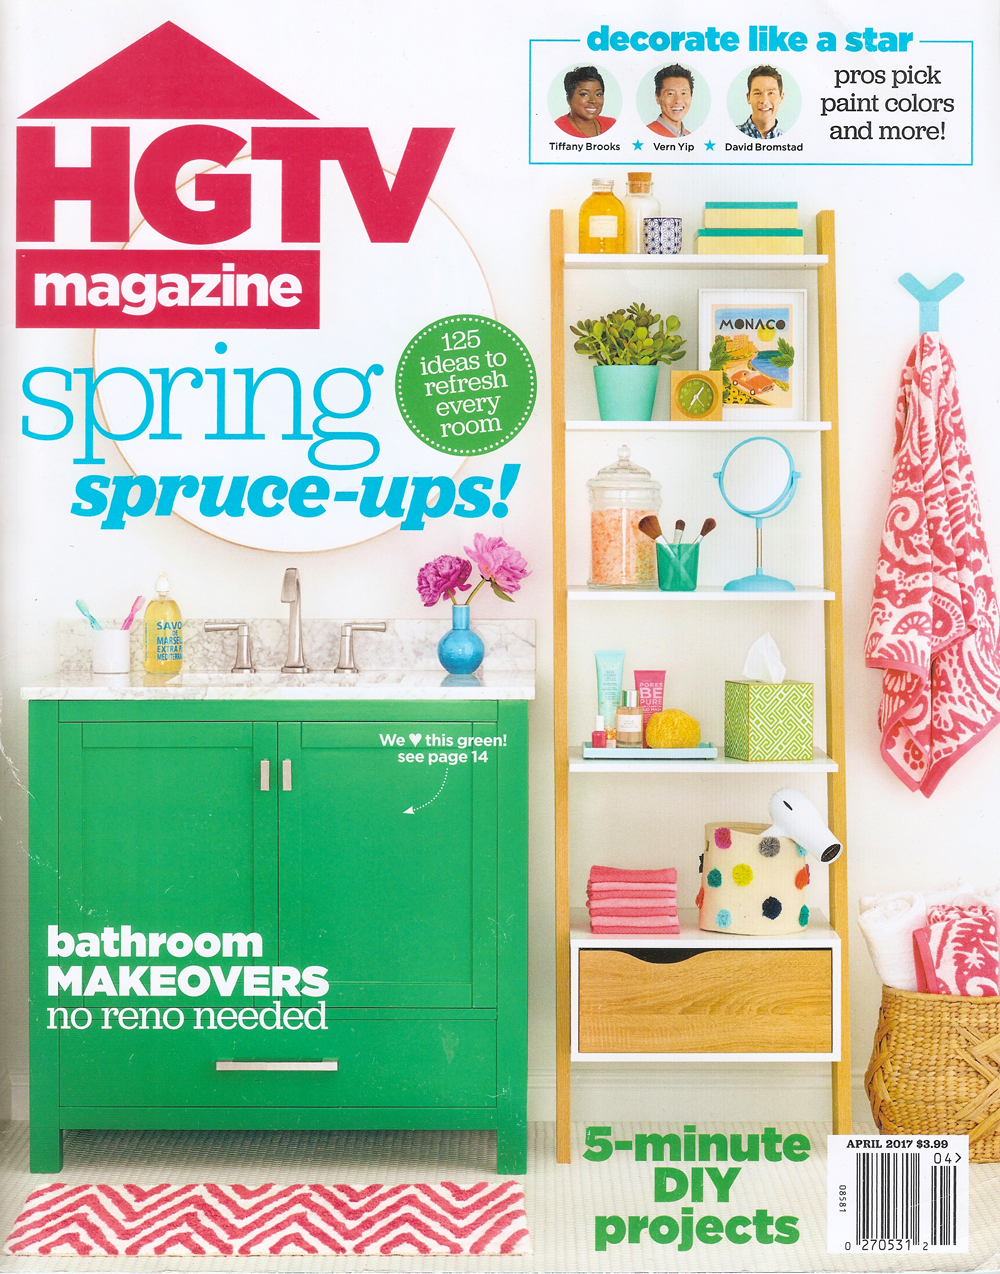 HGTV MAGAZINE - April 2017